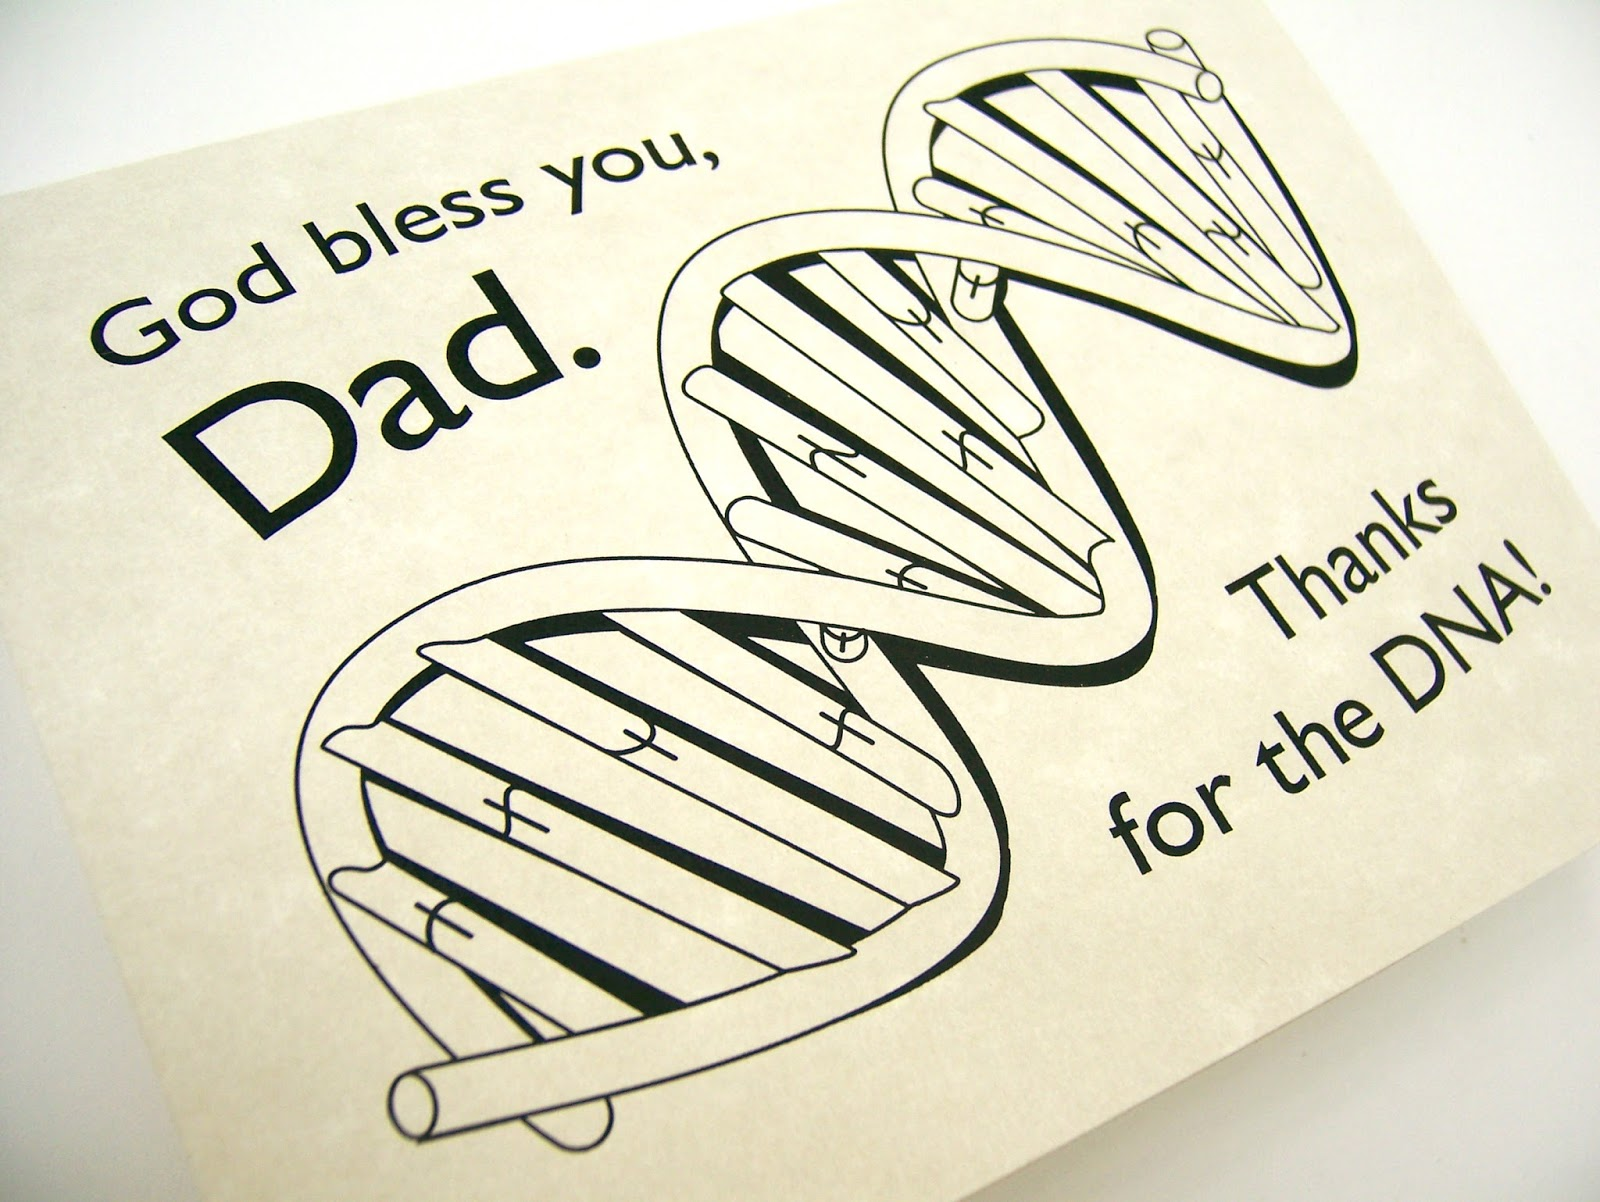 Family Tree Wording Ideas For Handmade Cards Favorite Bible Verses